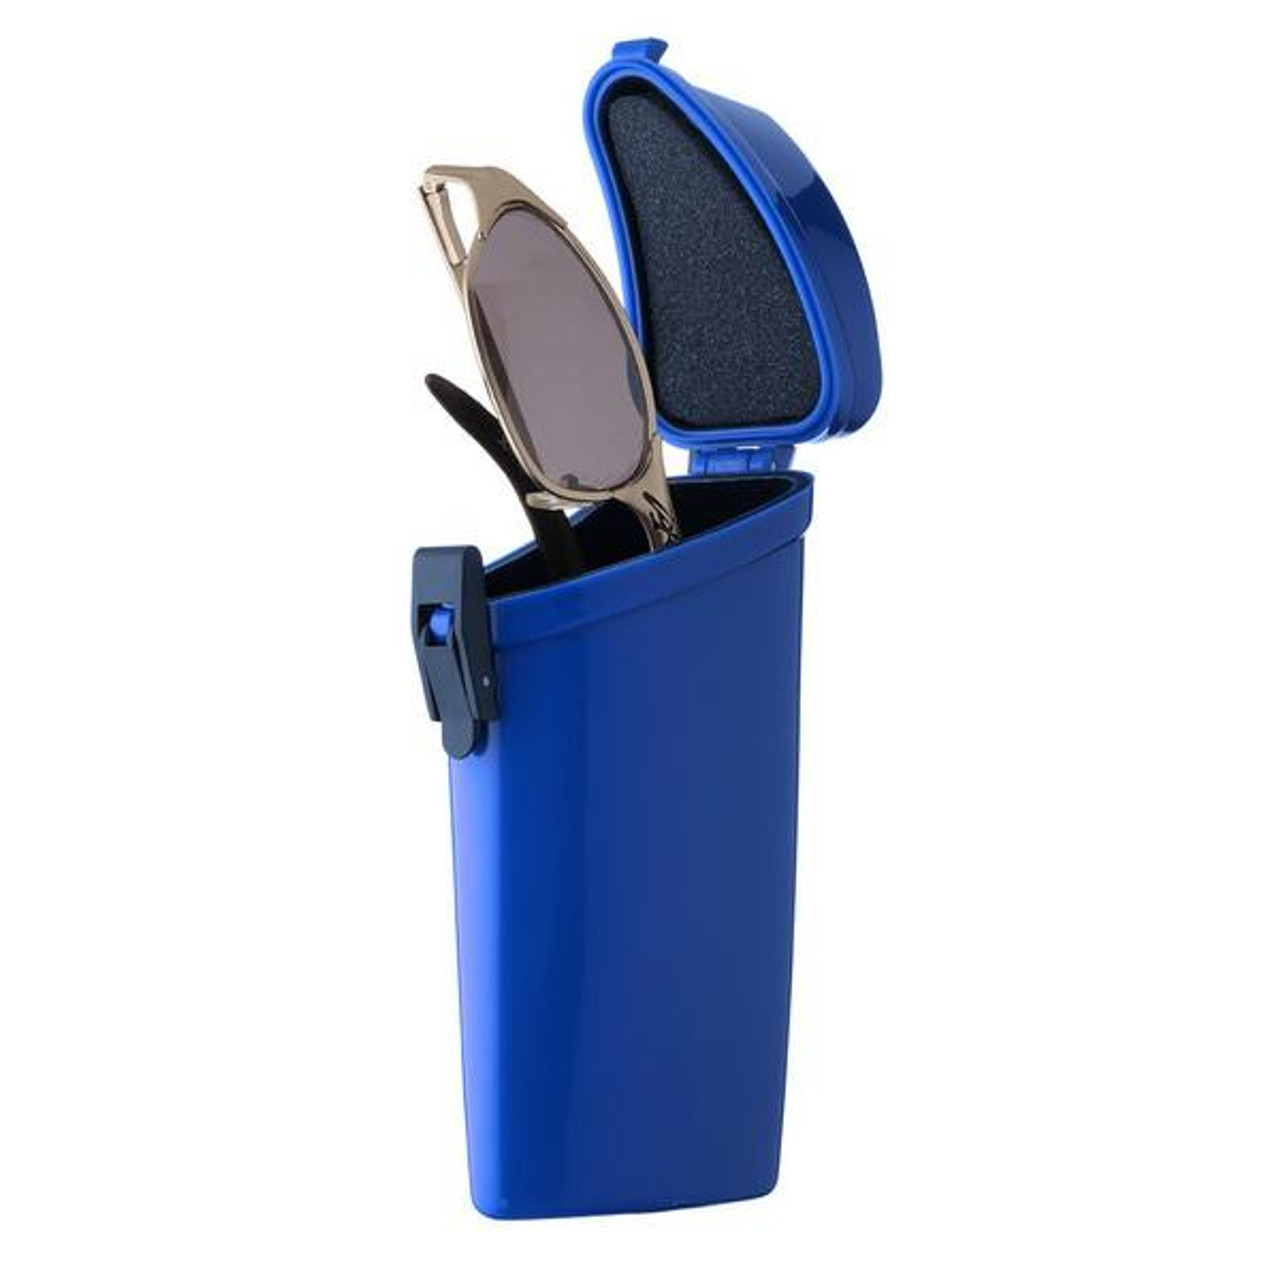 Witz Dry Box LENS Locker Glasses